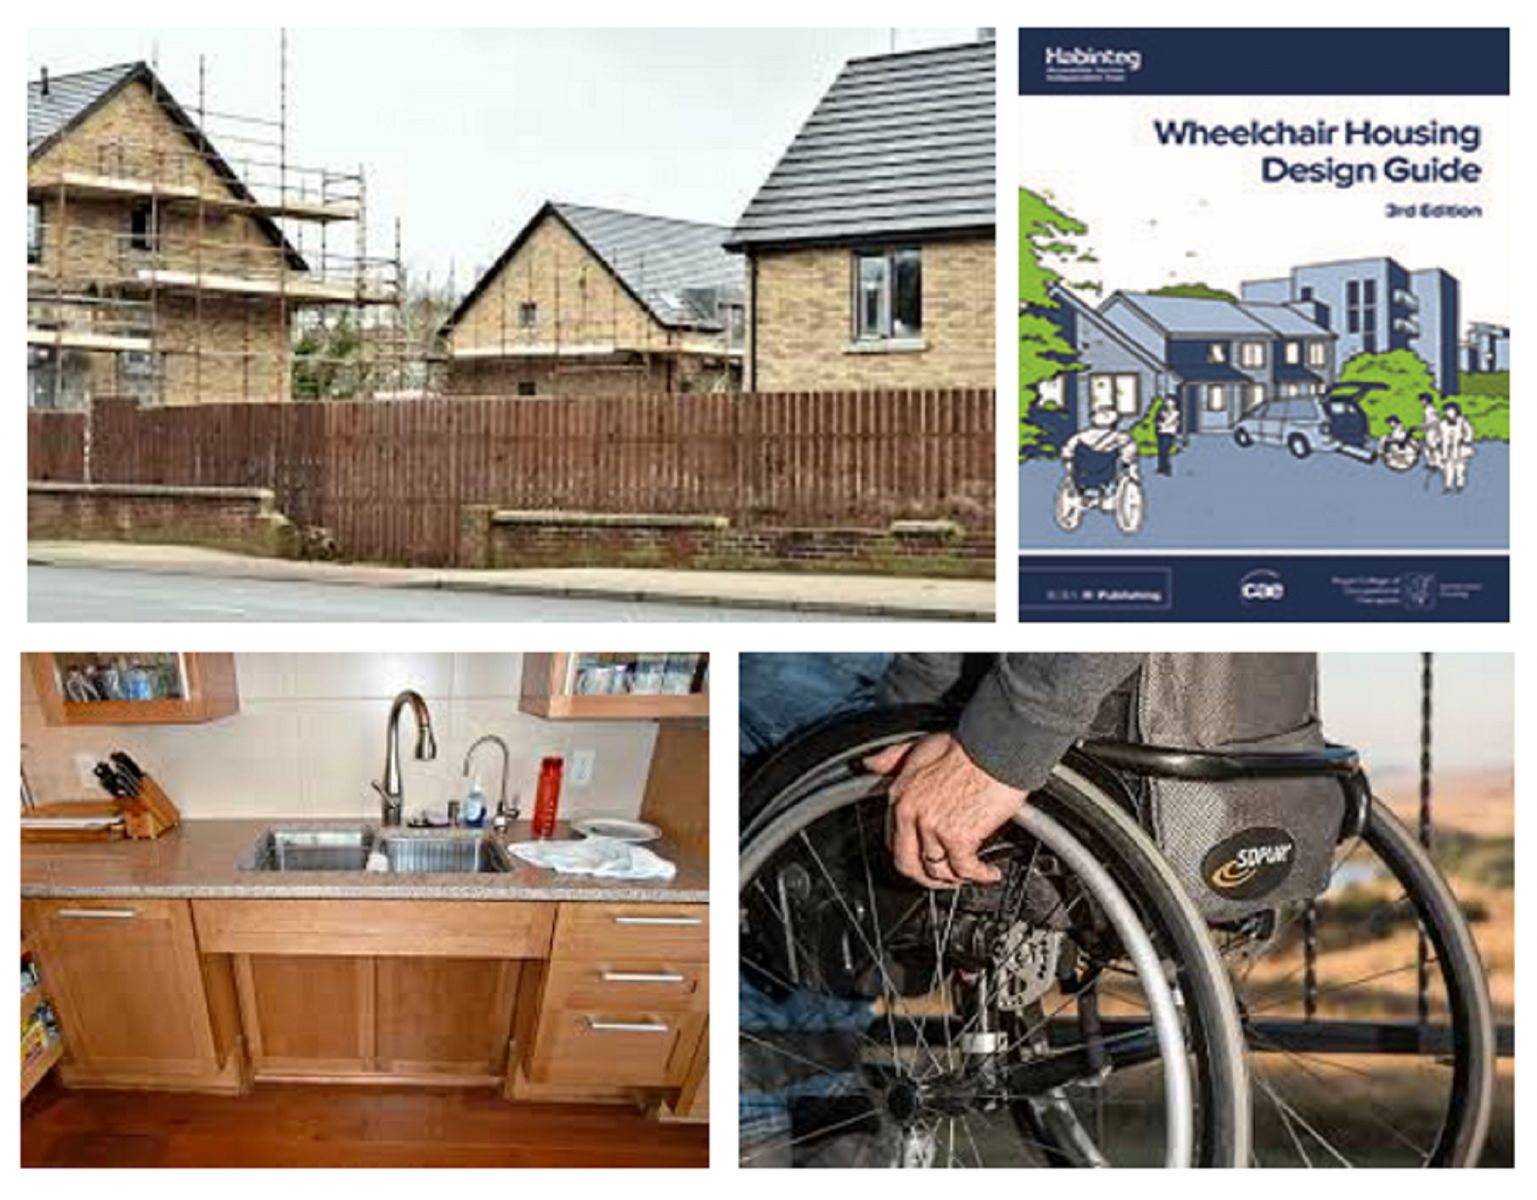 Houses under construction, wheelchair accessible kitchen and cover of 'Wheelchair Housing Design Guide'.